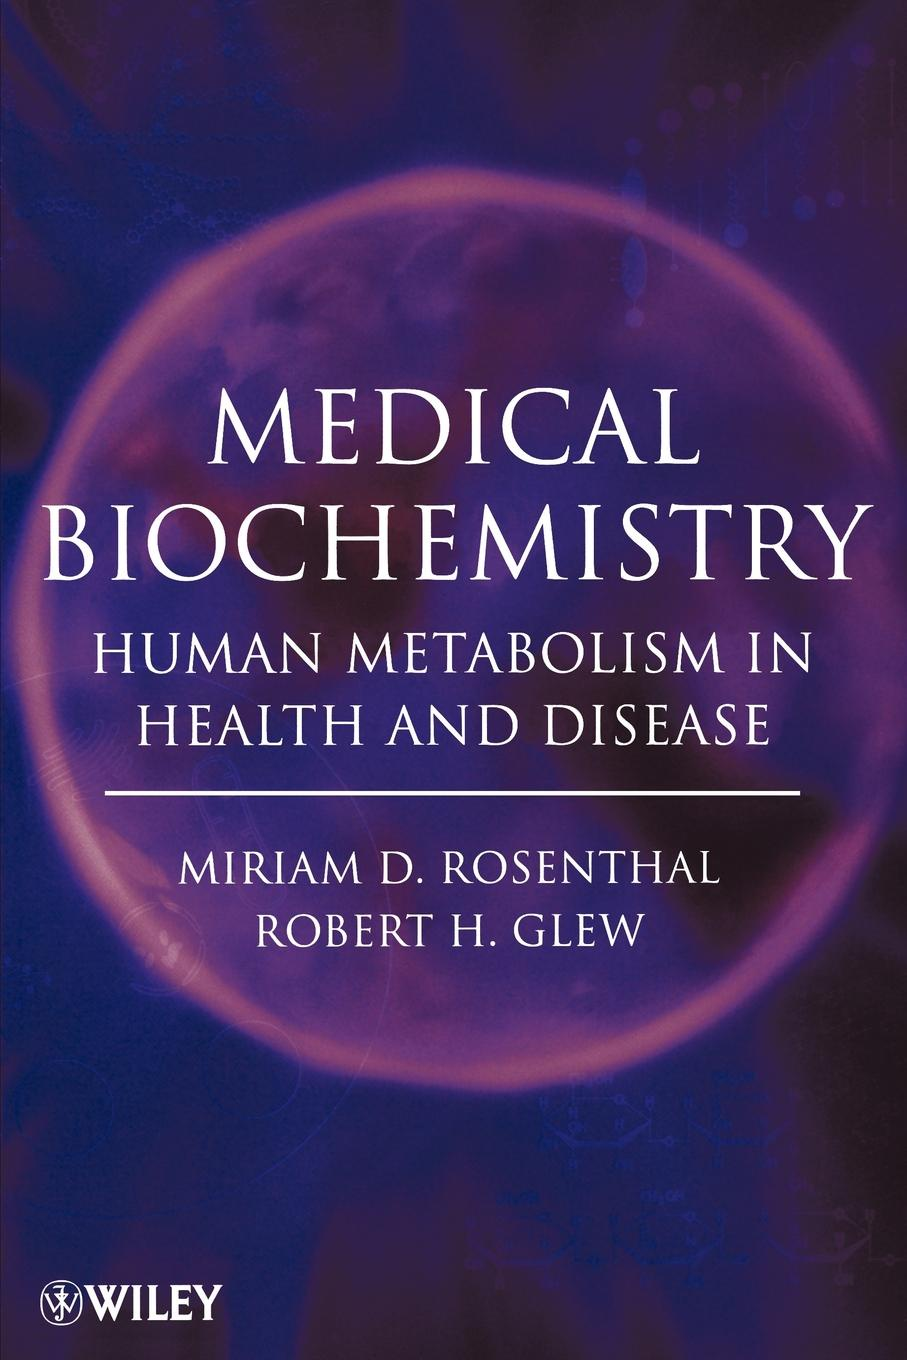 Miriam D. Rosenthal, Robert H. Glew Medical Biochemistry. Human Metabolism in Health and Disease imaging of the human brain in health and disease